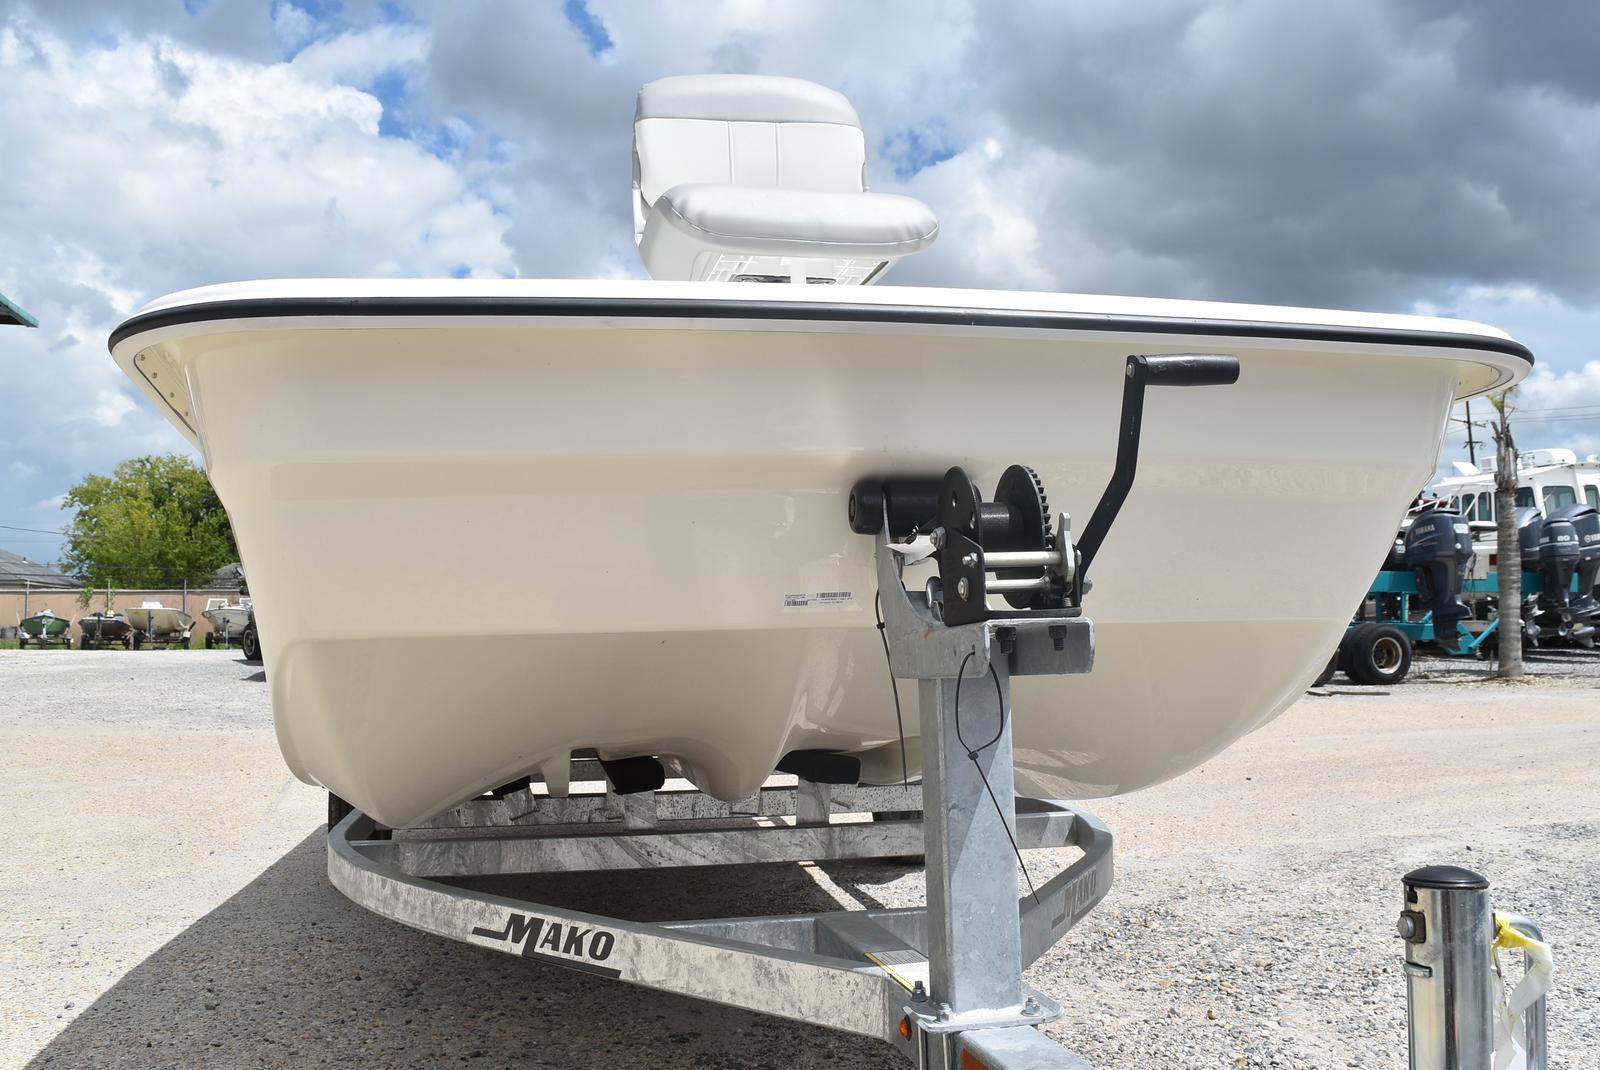 2020 Mako boat for sale, model of the boat is Pro Skiff 17, 75 ELPT & Image # 354 of 702